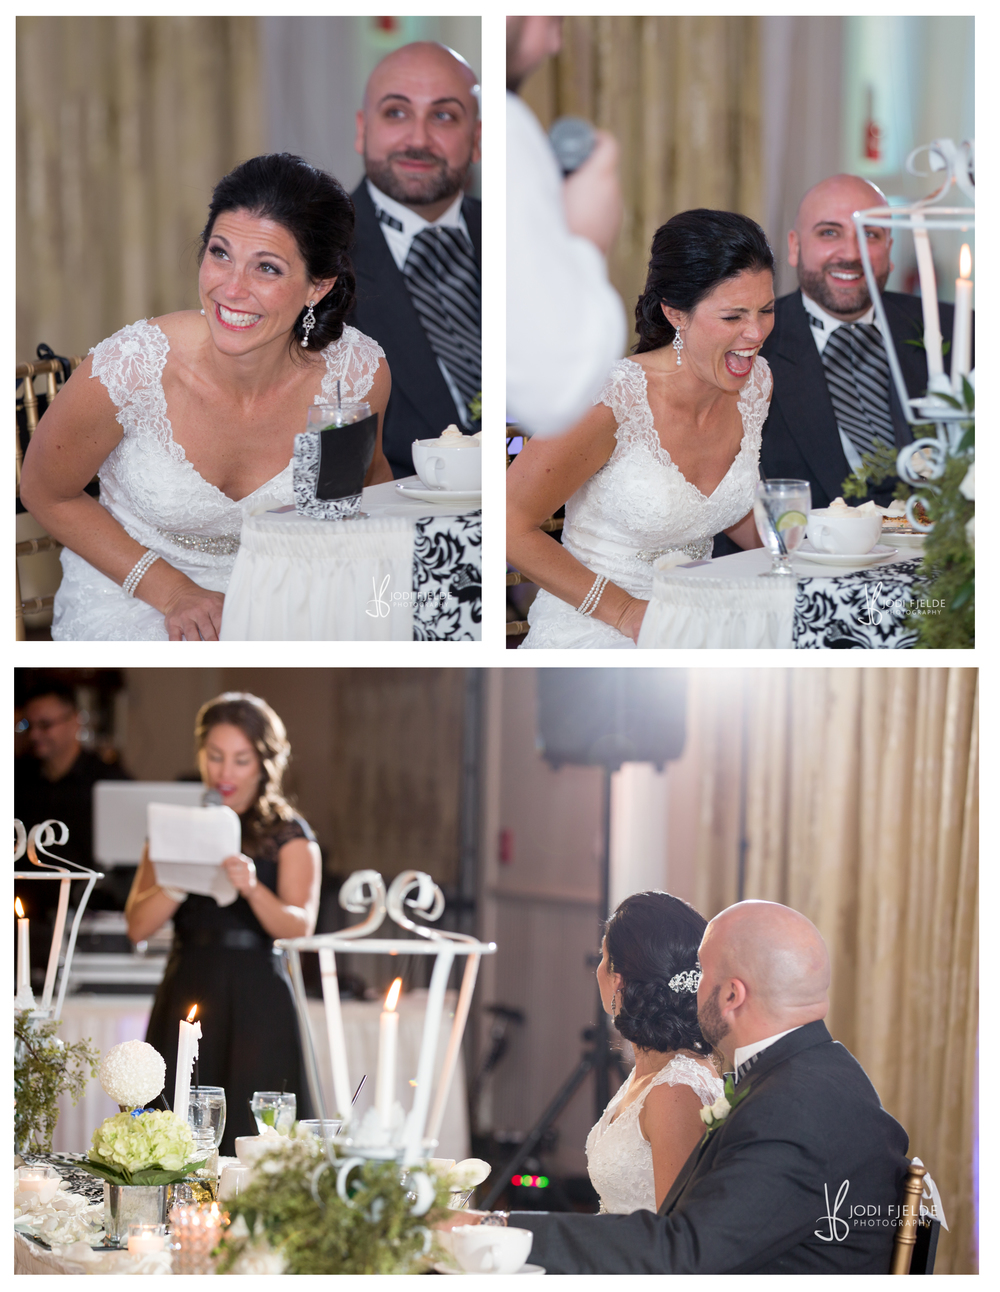 Highland_Manor_Apopka_Florida_wedding_Jackie_&_Tim_photography_jodi_Fjelde_photography-30.jpg